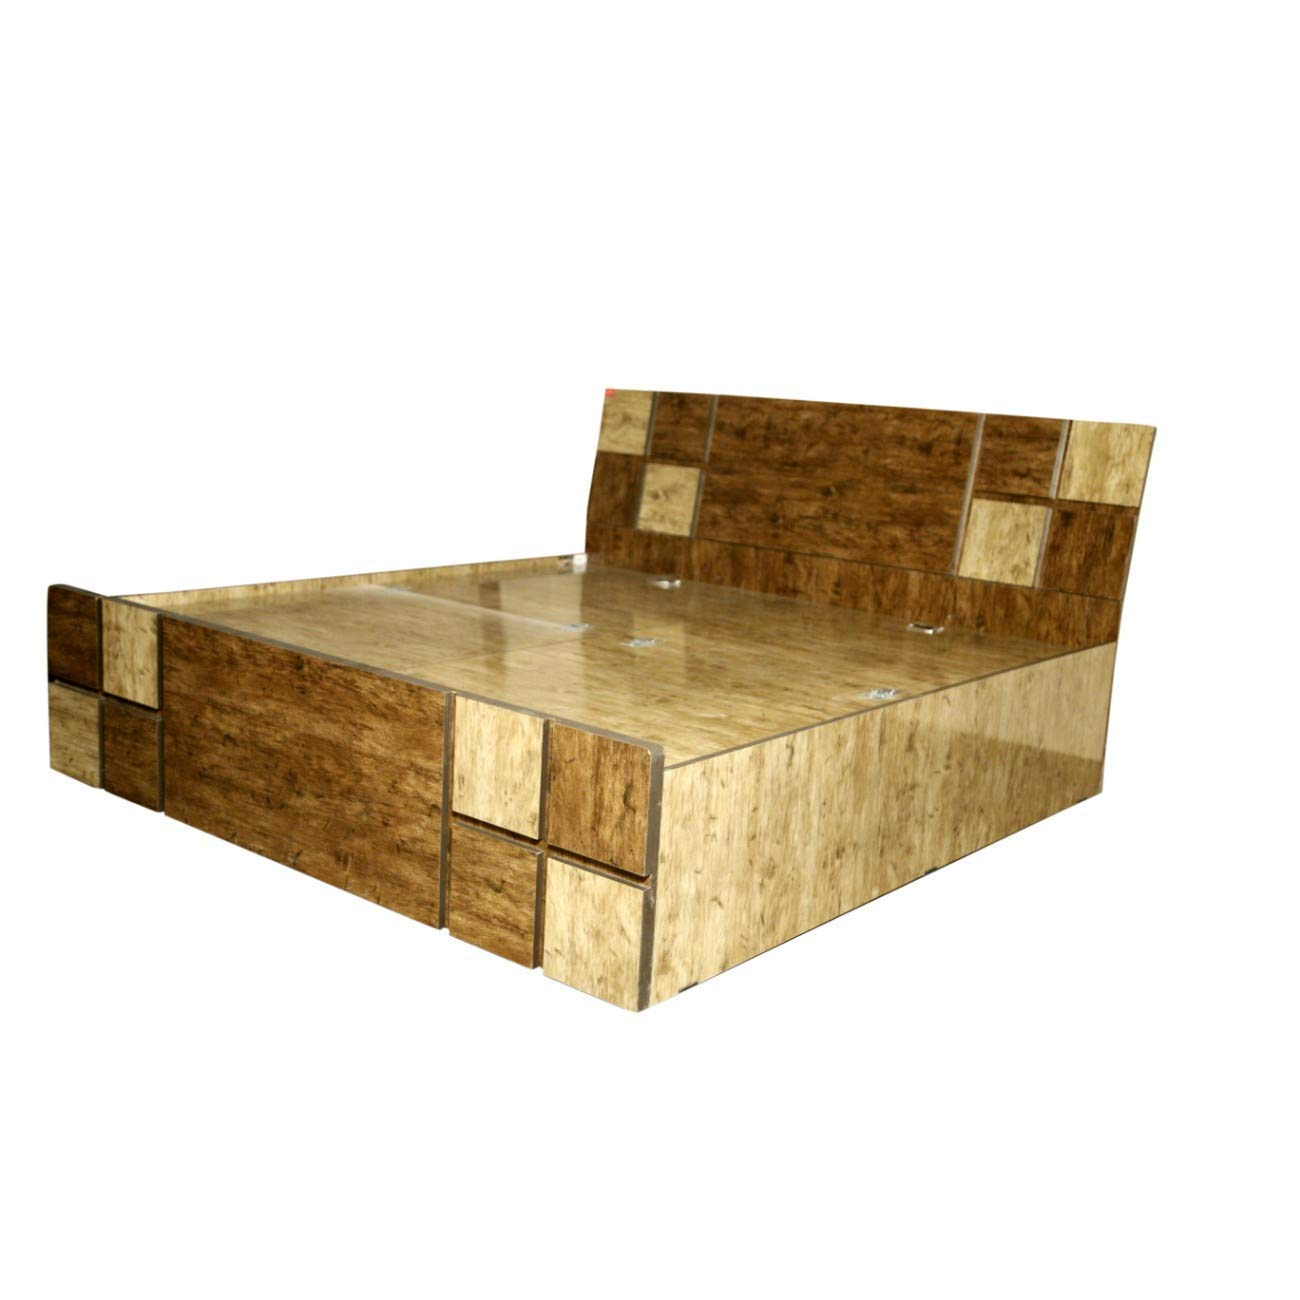 Dk furniture engineered wood checks queen bed box amazon in home kitchen